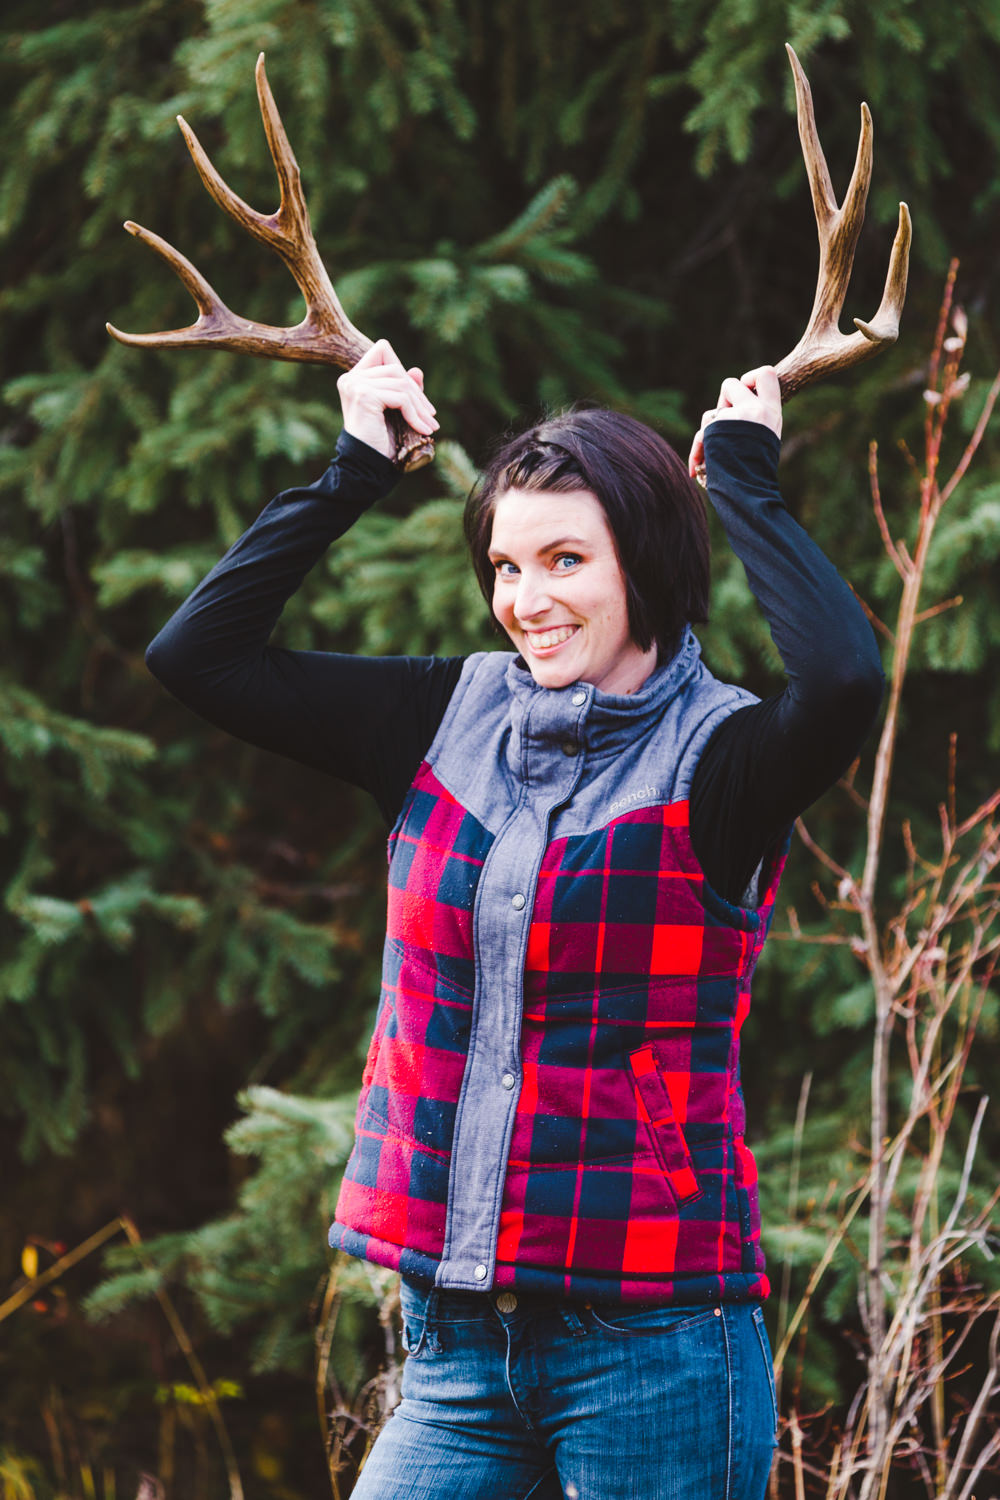 quesnel-family-photographers-quesnel-family-photography-cotton-wood-river-quesnel-bc-kelowna-photographer-julie-dorge (14 of 48).jpg